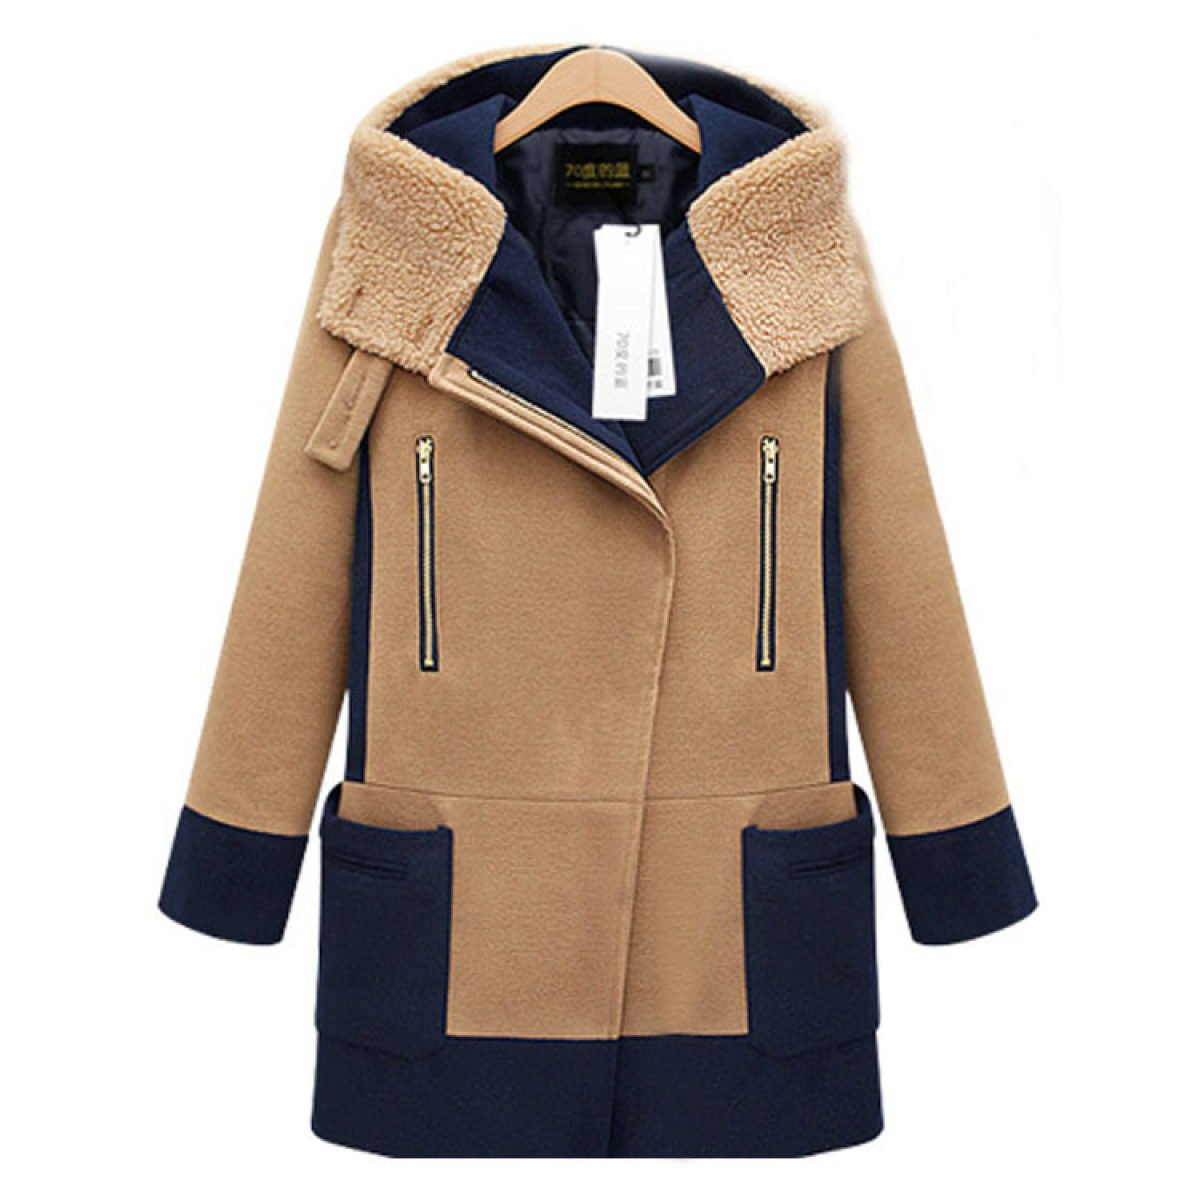 LQABW Chaqueta De Lana De Invierno New Fashion Woolen Coat